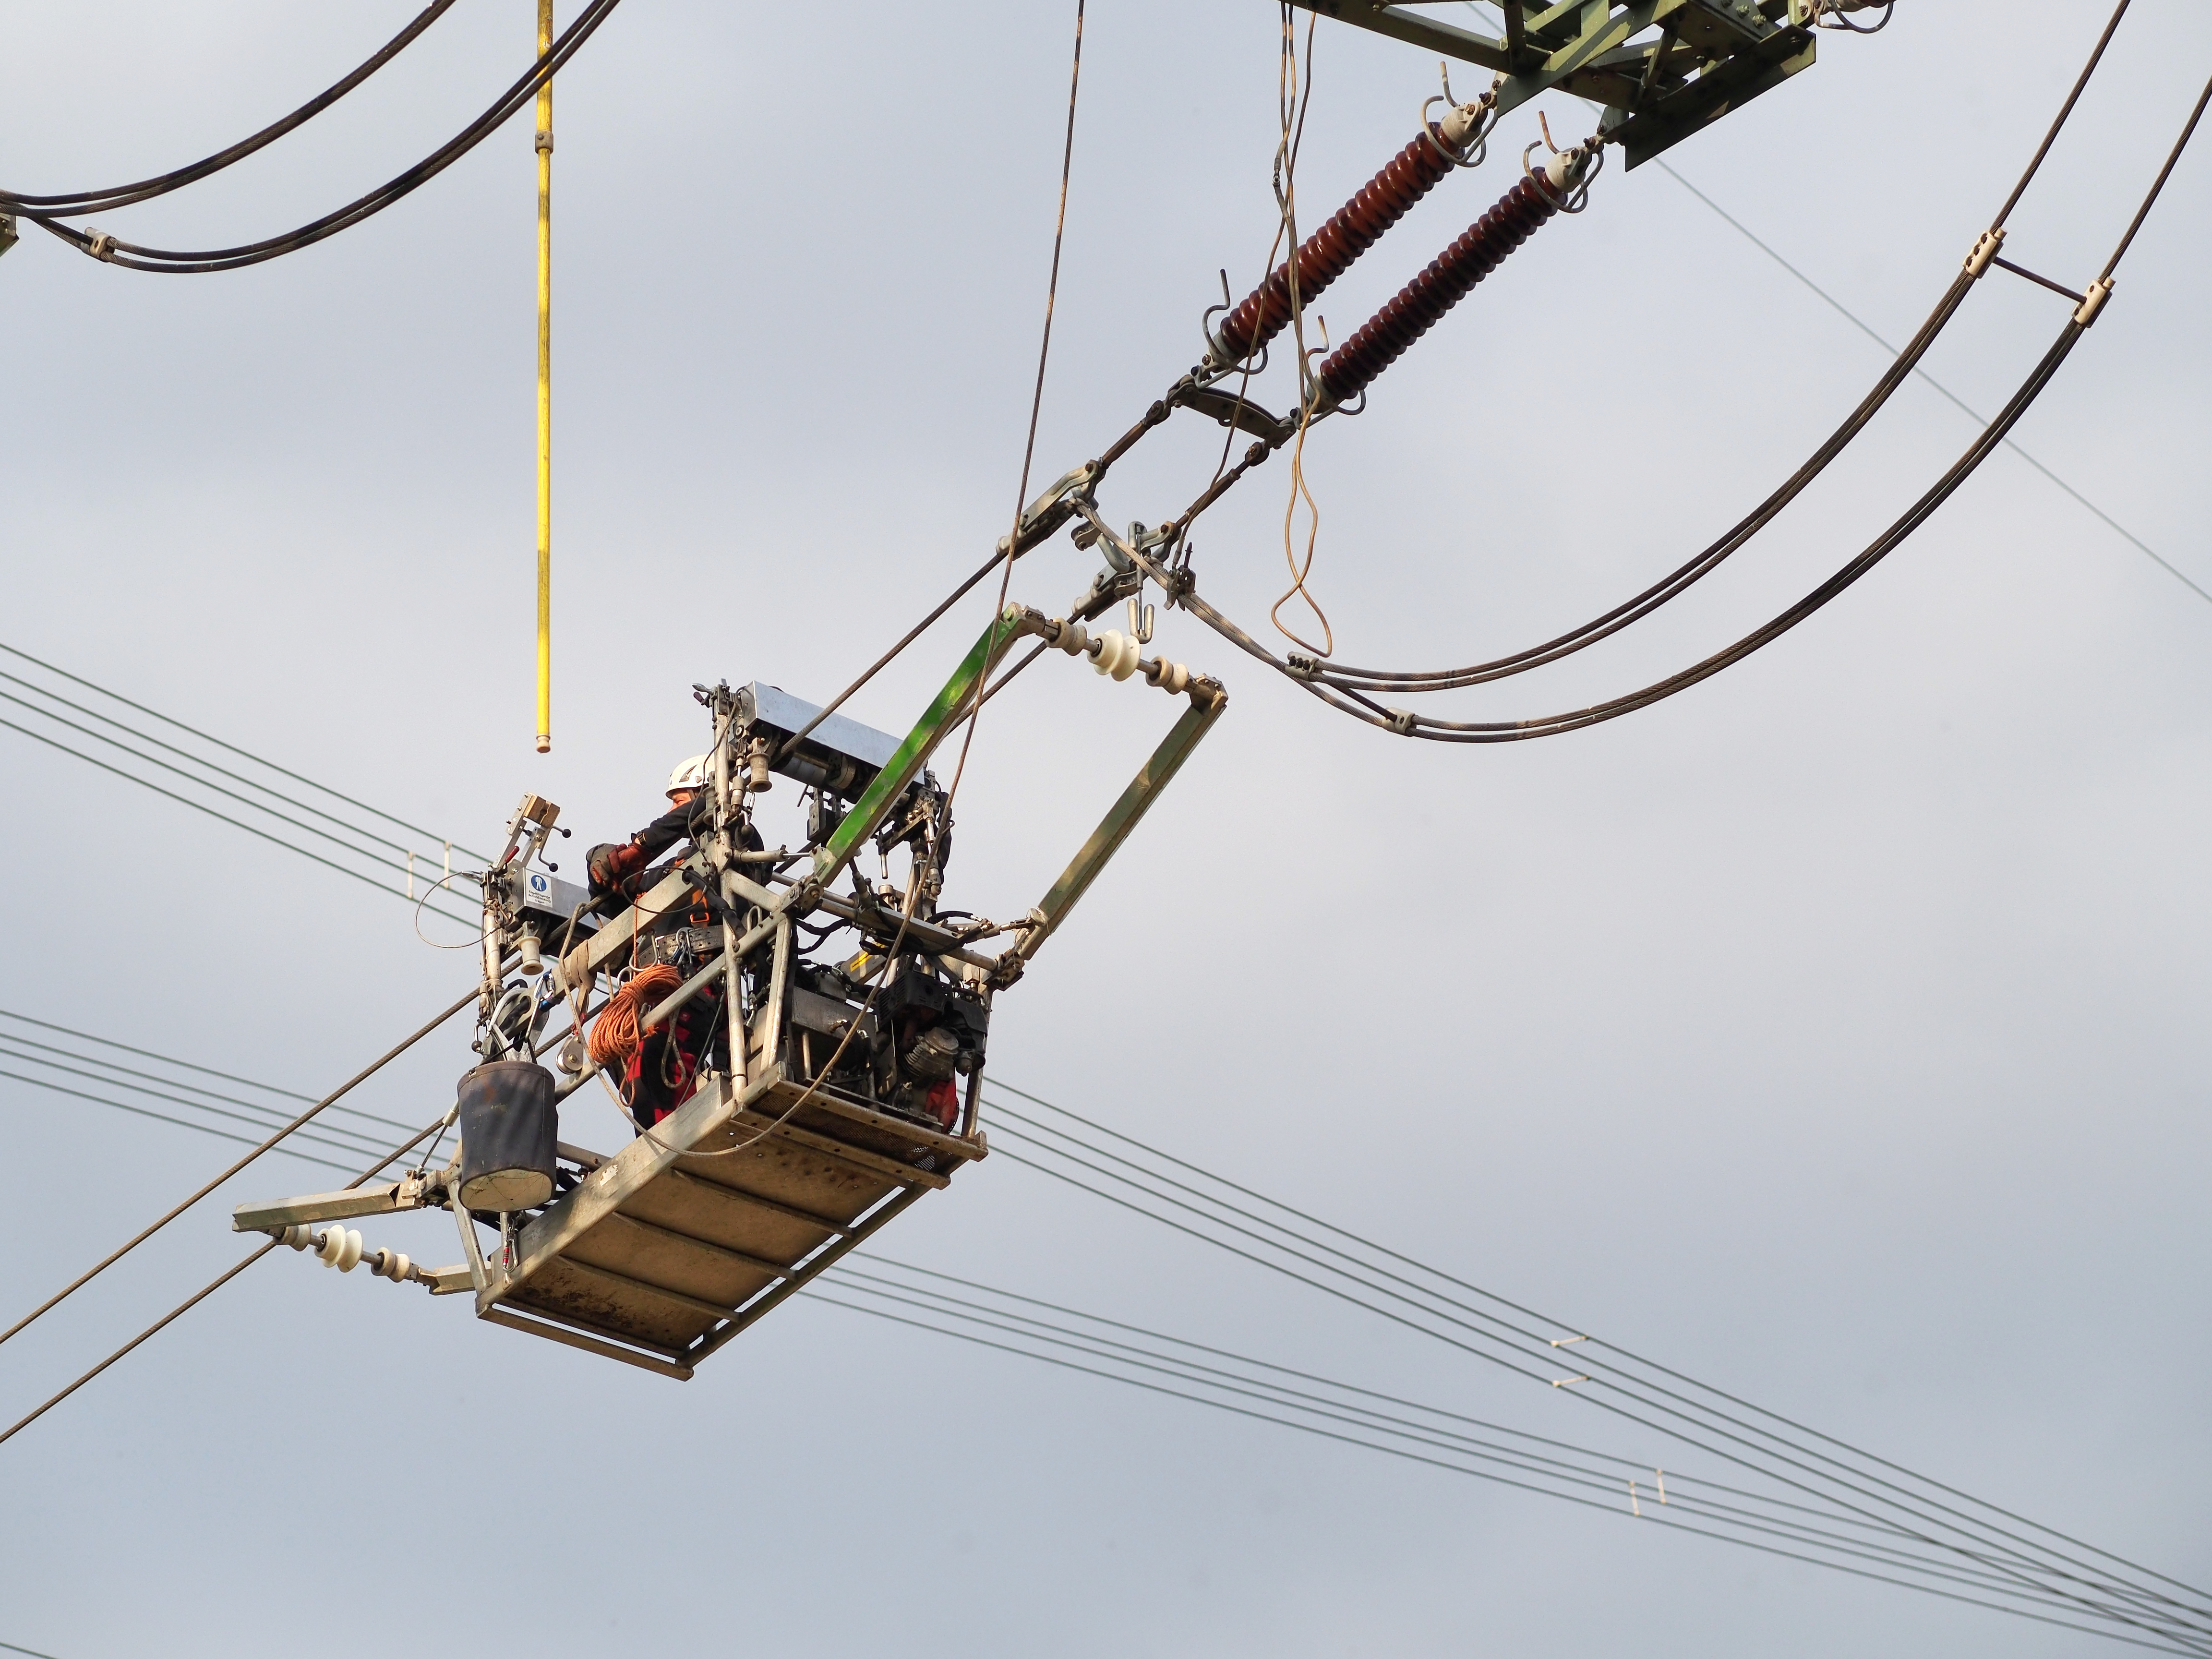 File:2013-cable-trolley-power-line-maintenance-1.jpg - Wikimedia ...: commons.wikimedia.org/wiki/File:2013-cable-trolley-power-line...